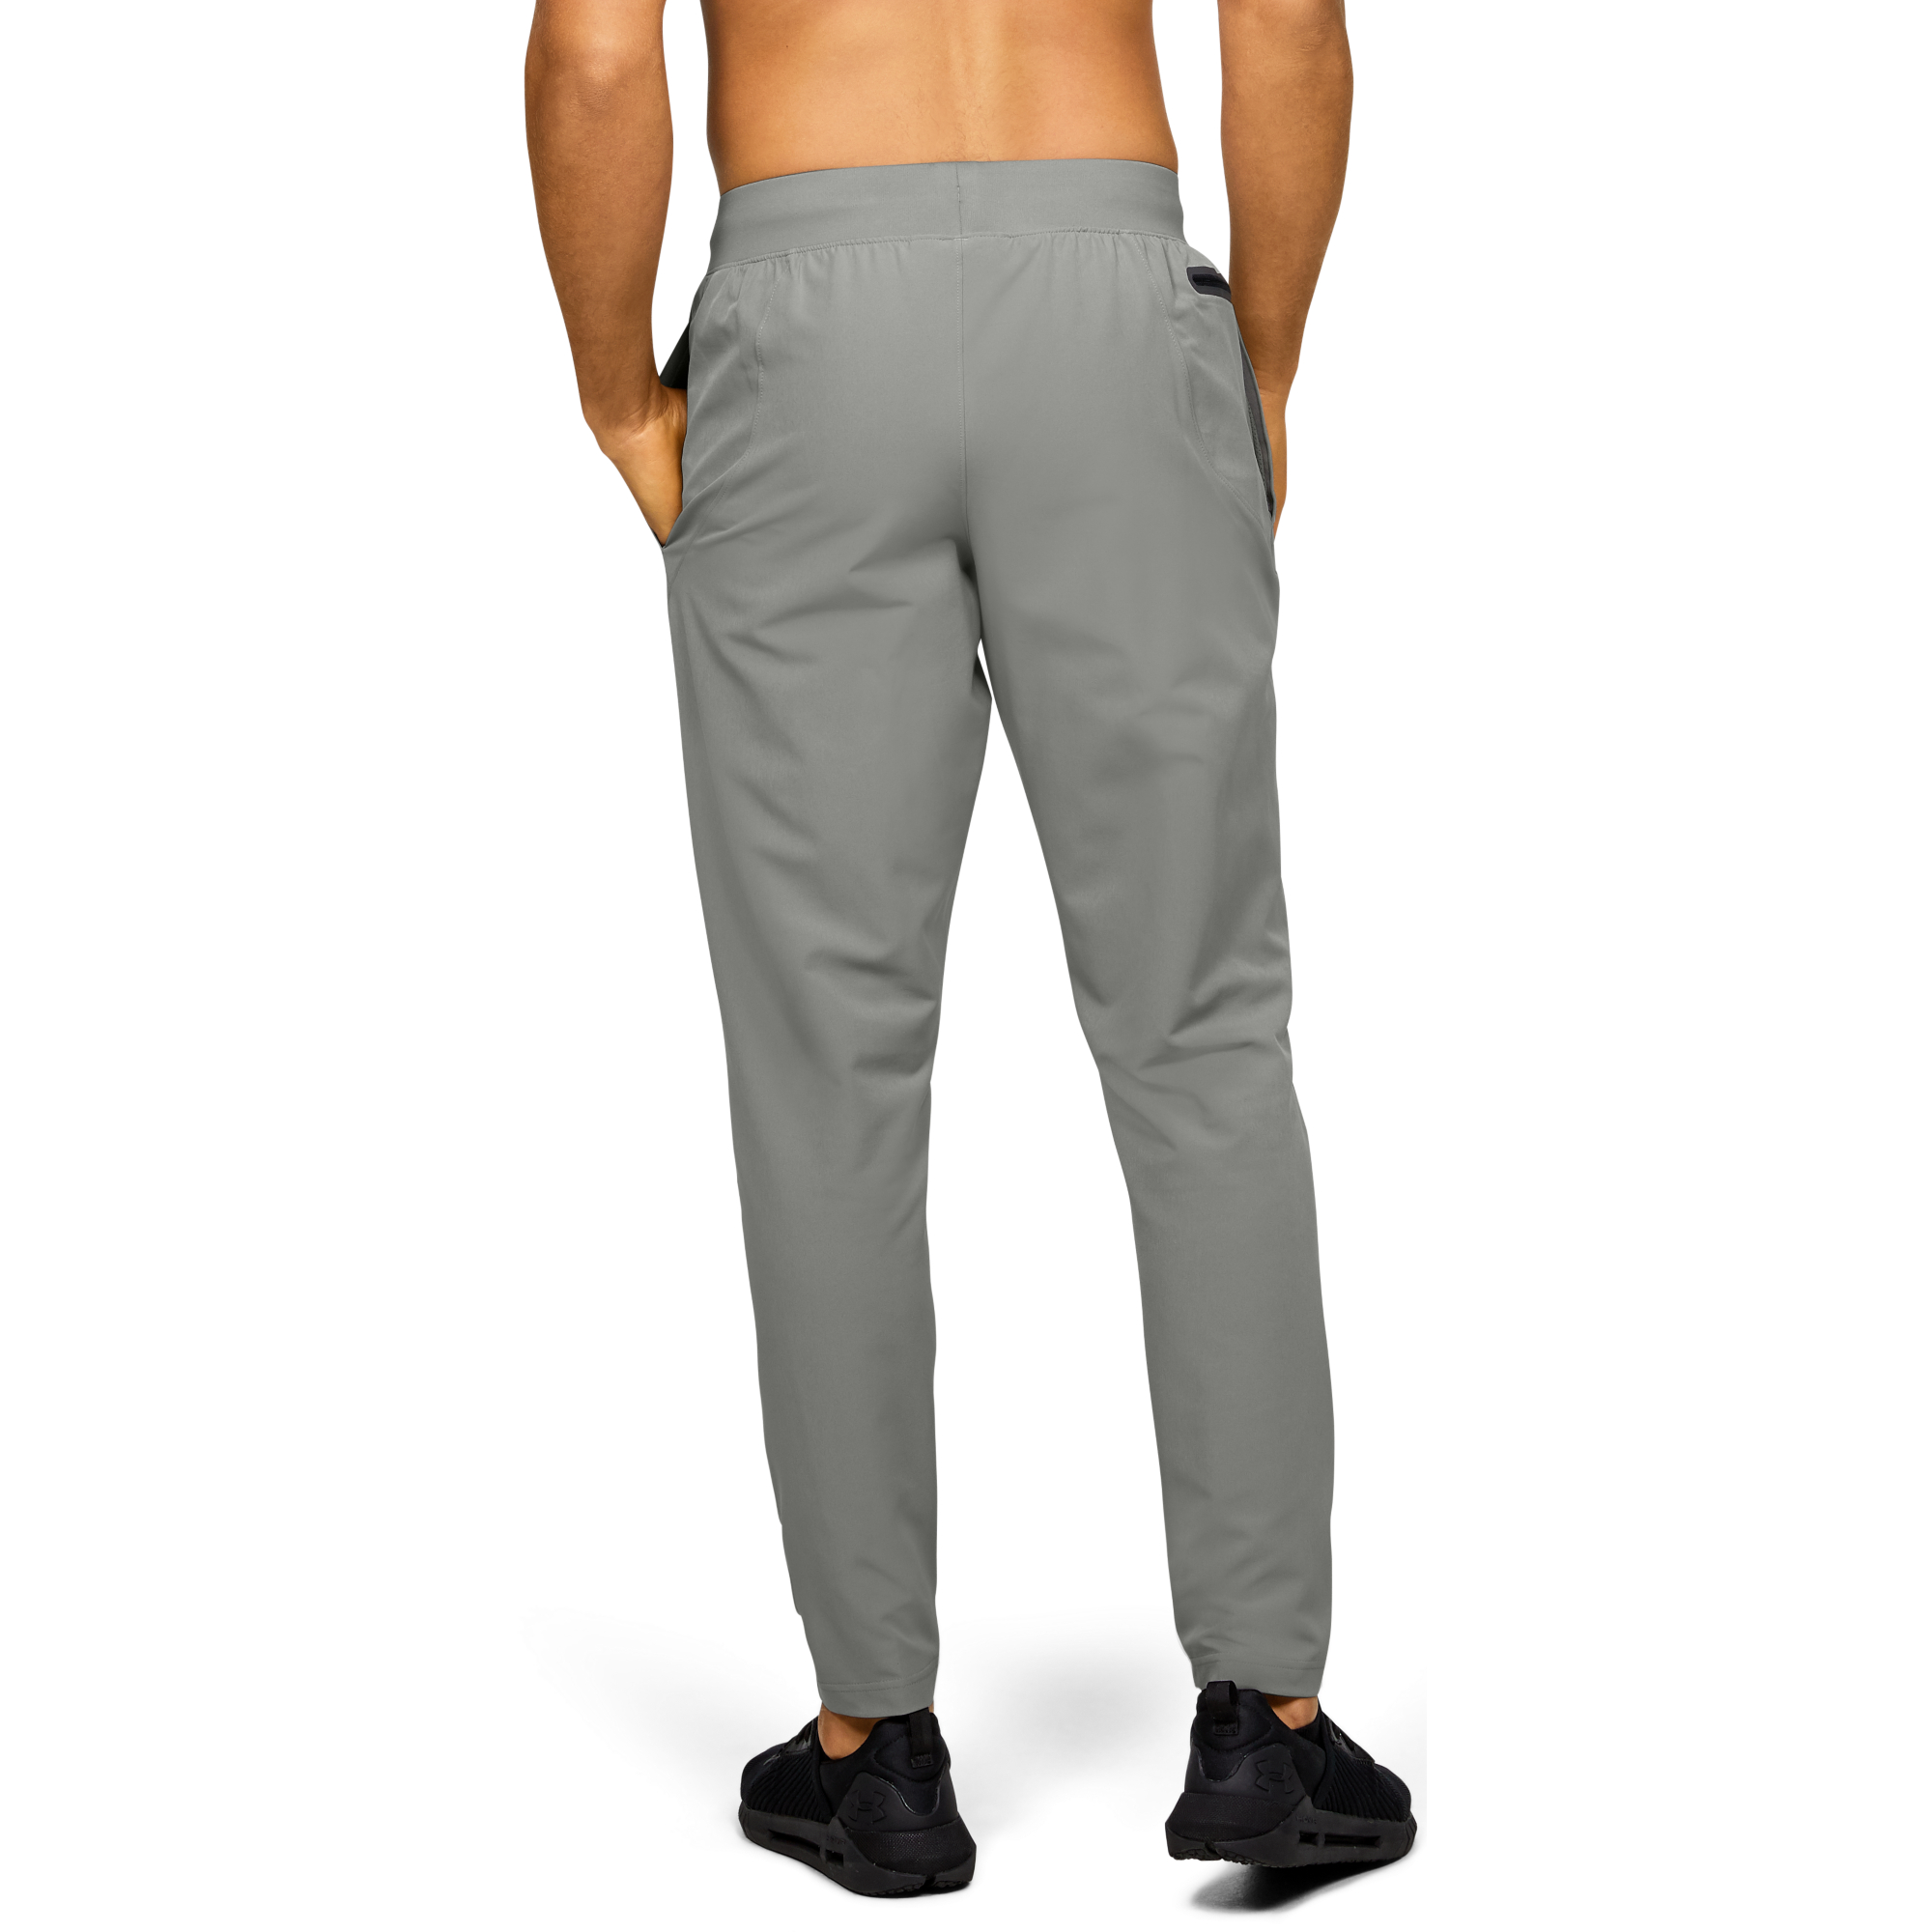 UTILITATE STRETCH TAPEDED TAPERED PANT-GRN